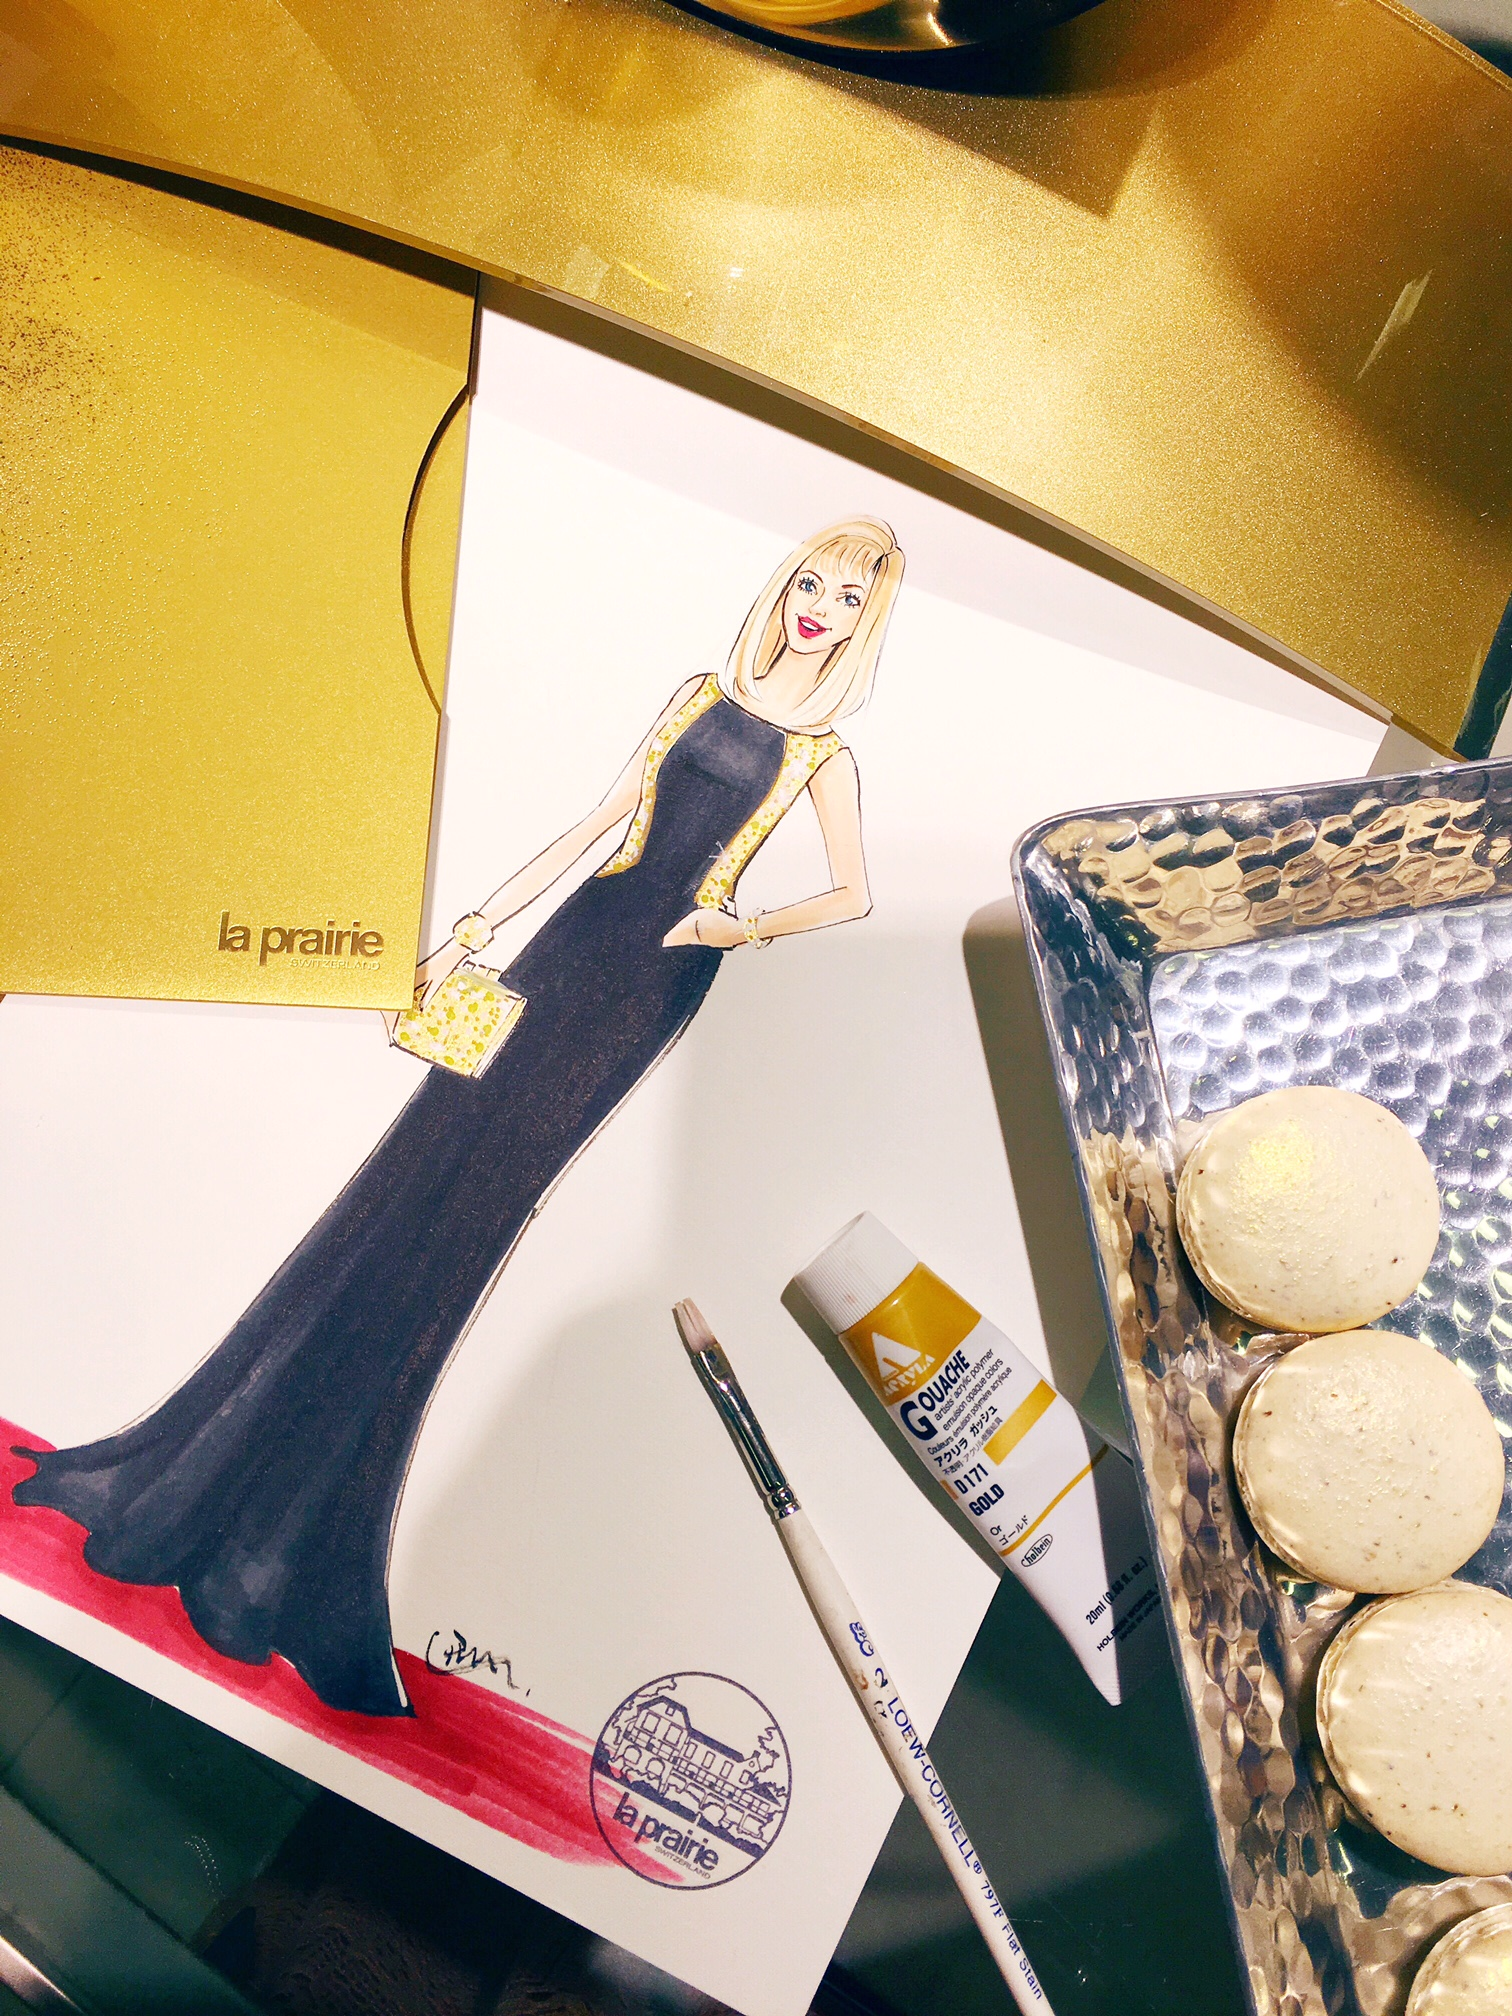 La-Prairie-live-sketch-event-at-Saks fifth avenue-Houston-by-fashion-illustrator-Rongrong-DeVoe--1